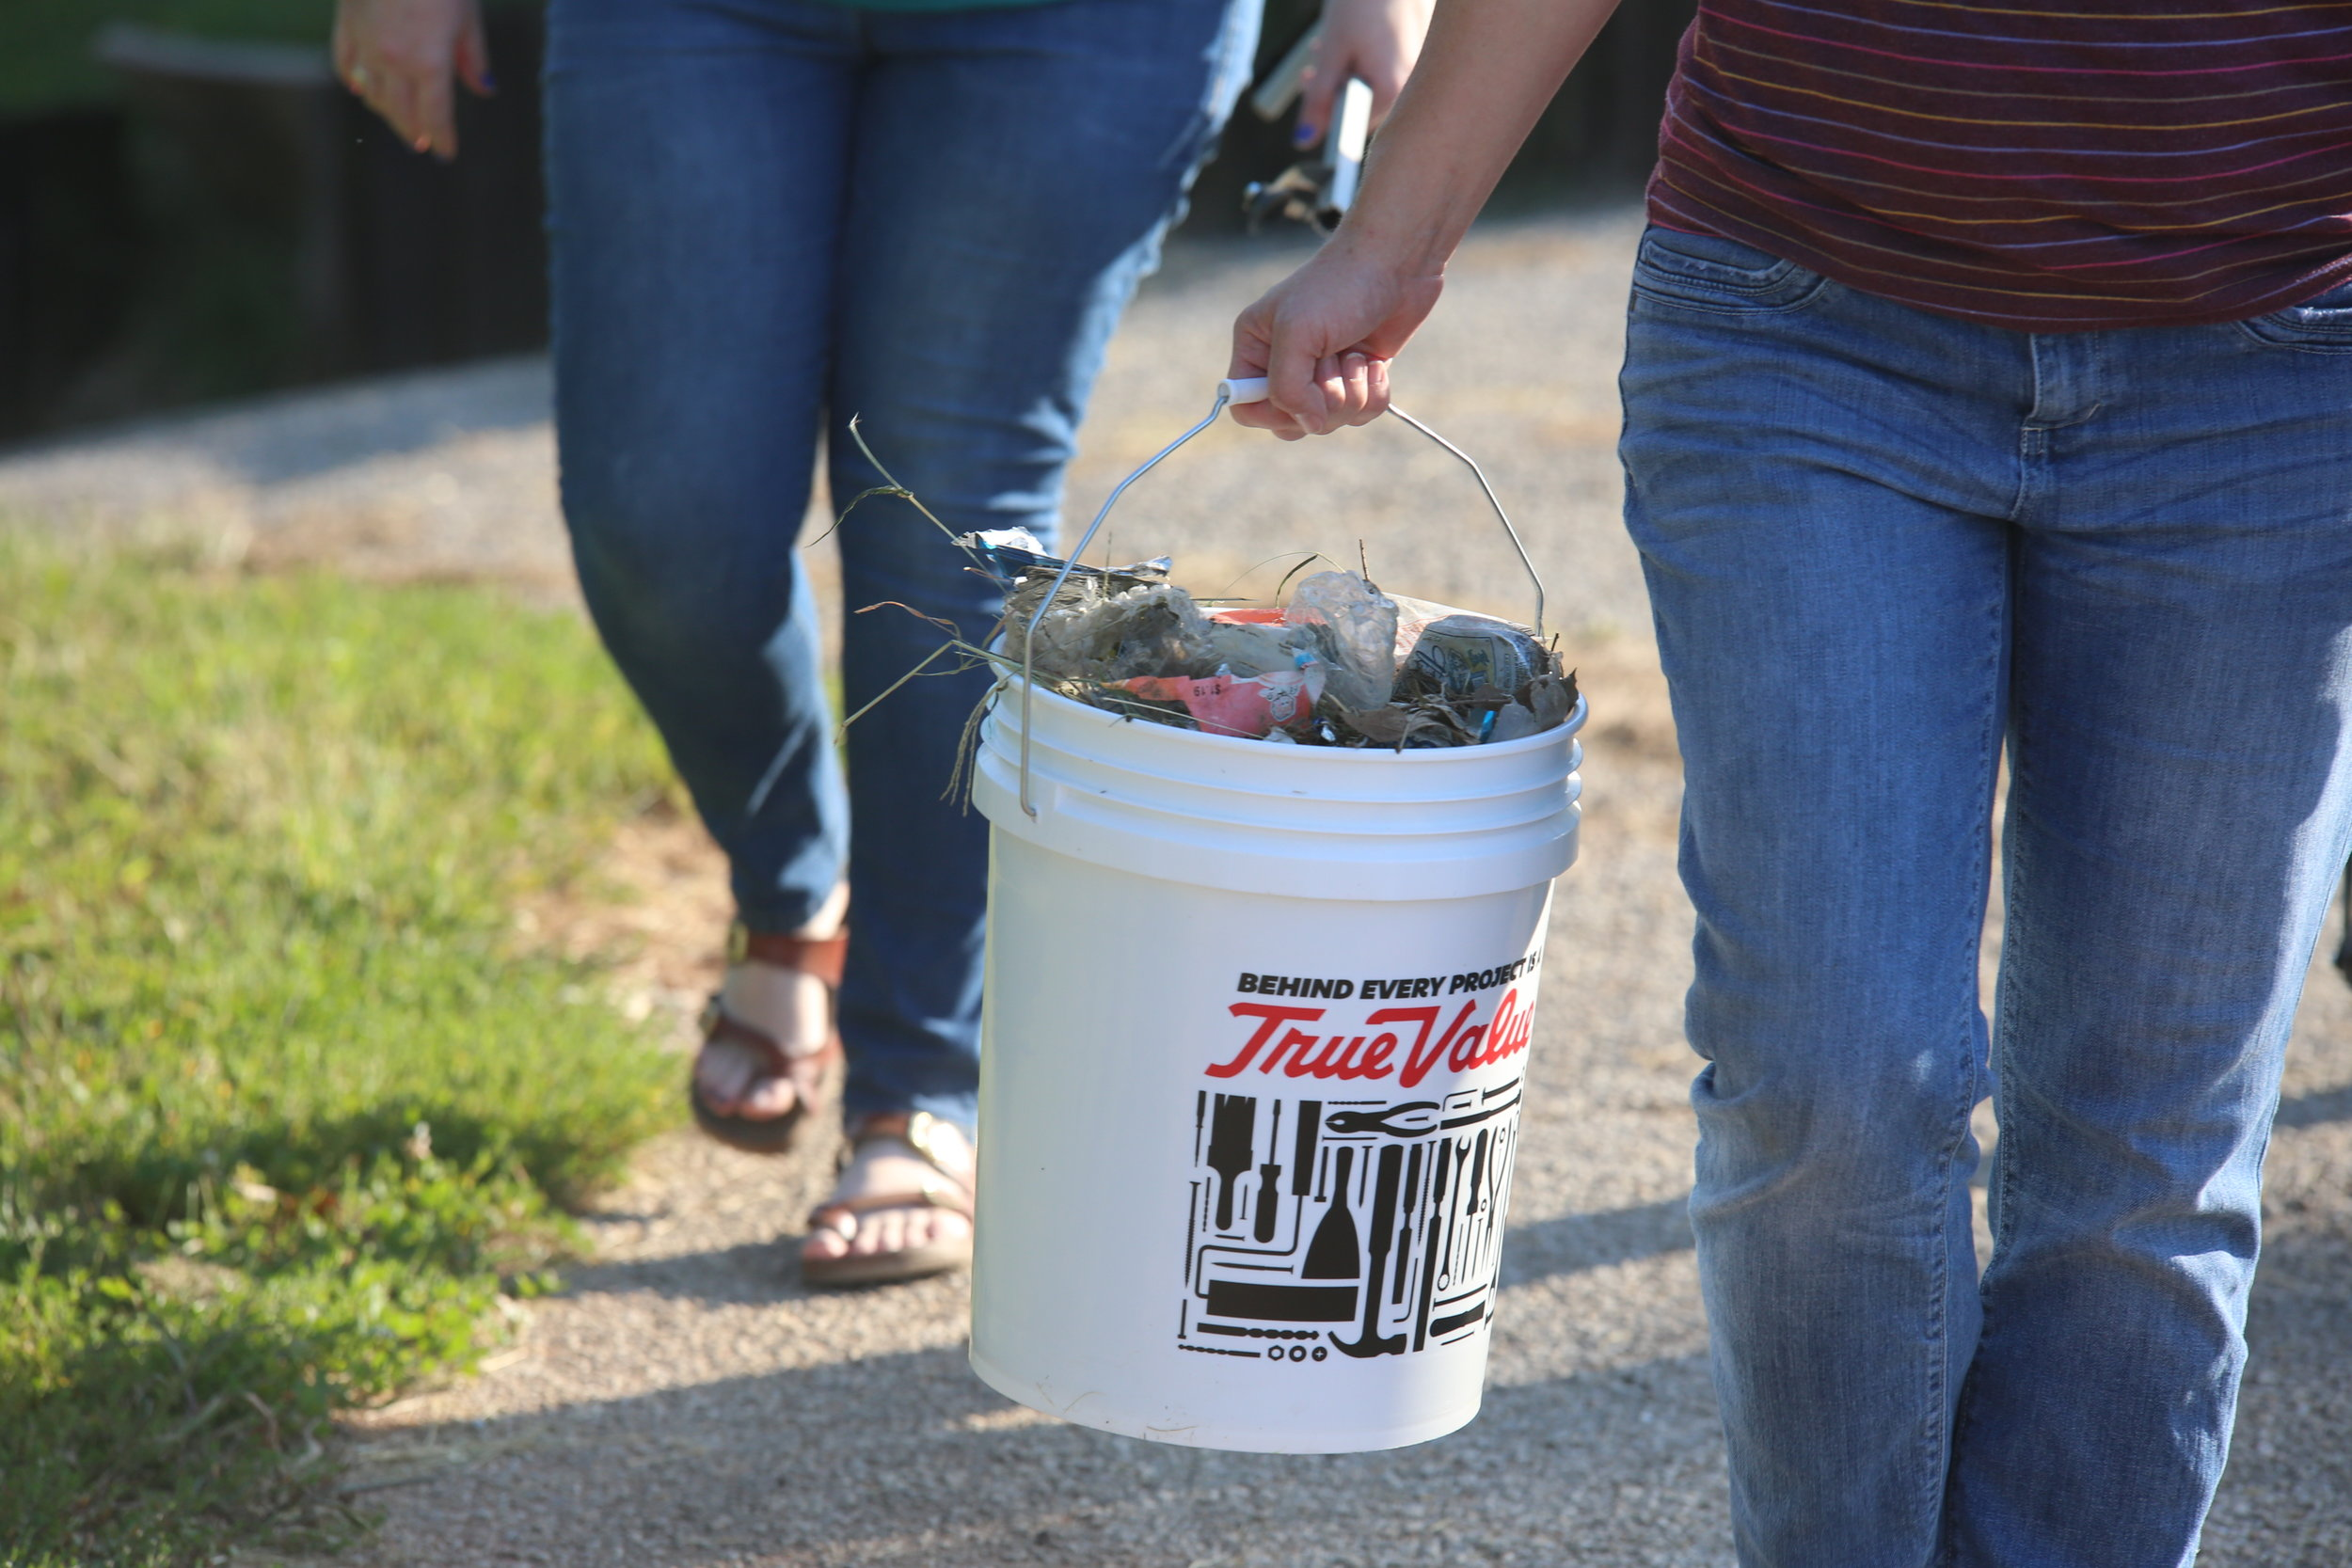 Much of the trash was from tobacco and plastic bottles, many of which had been shredded by lawnmowers.